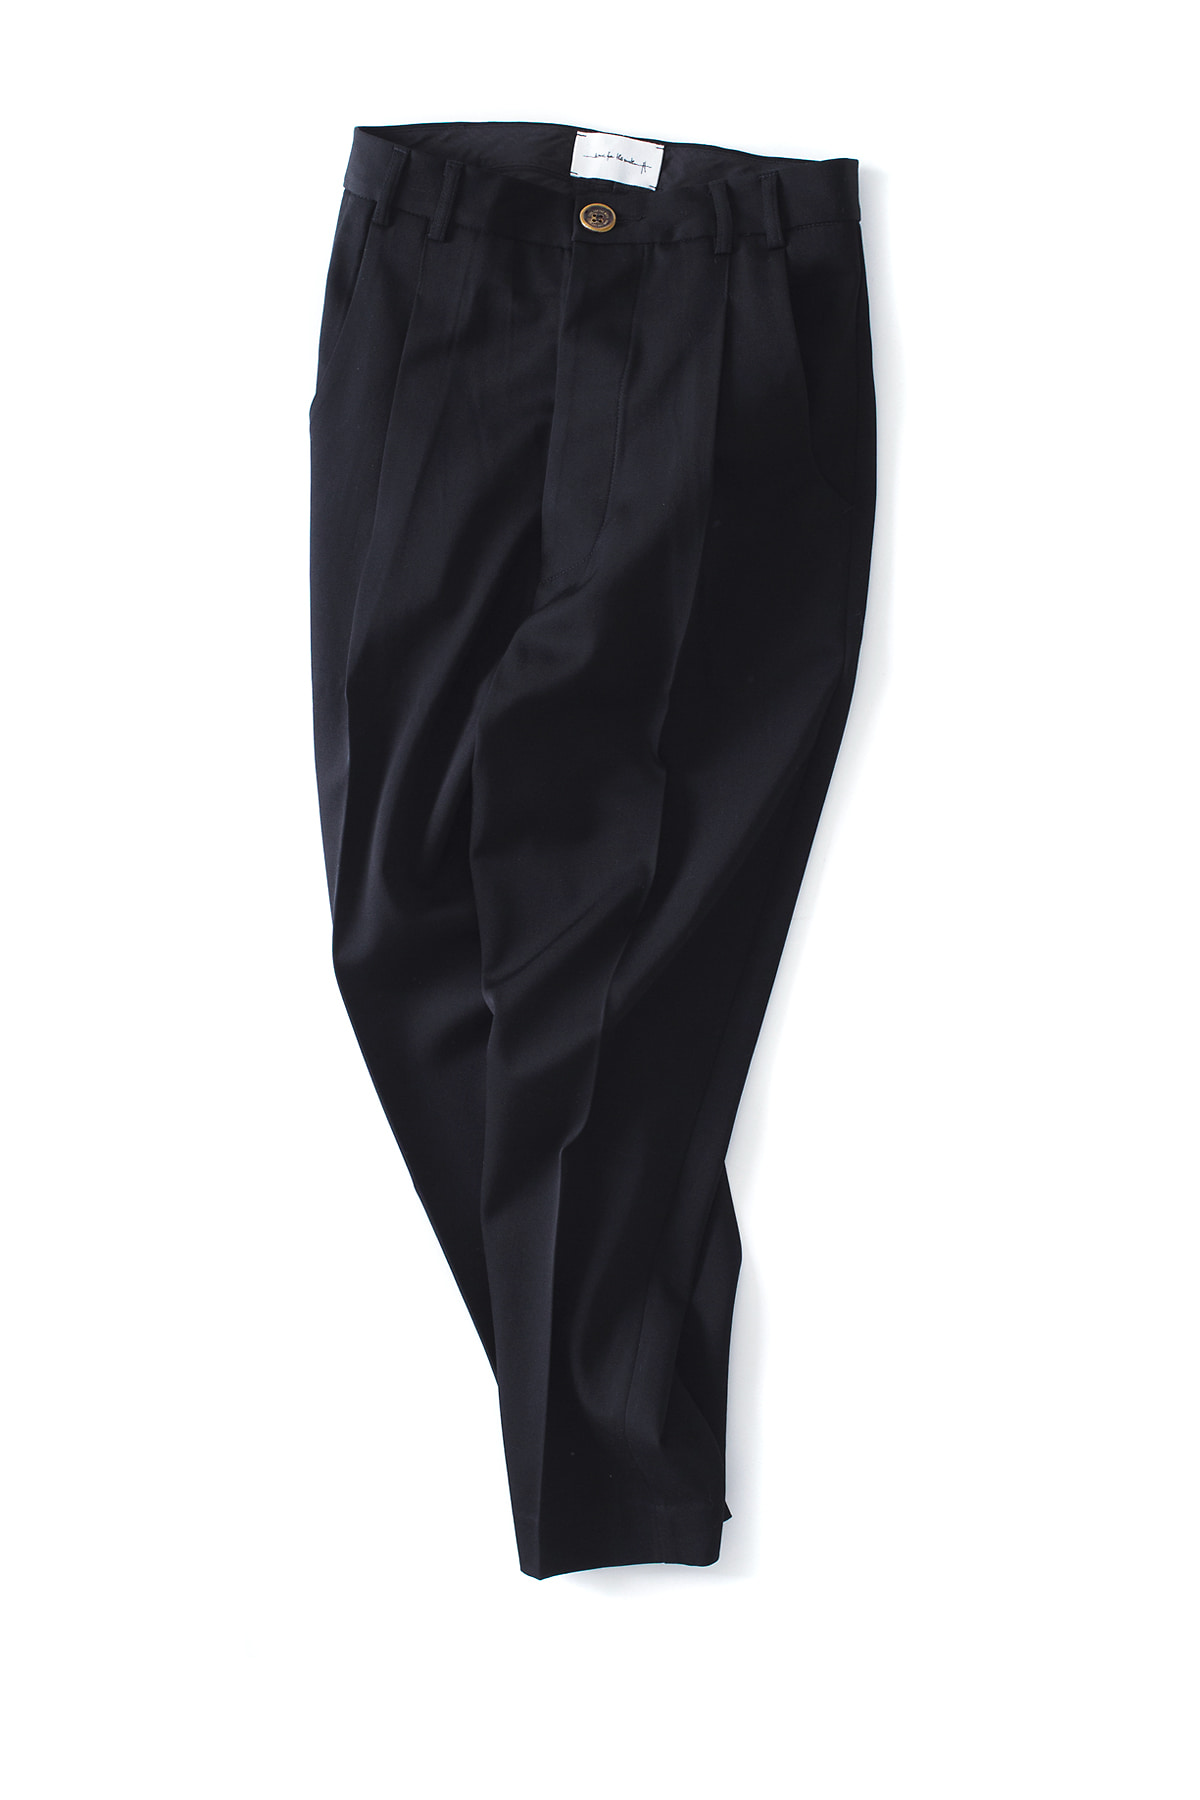 Song for the Mute : Pleated Tapered Pants (Black)